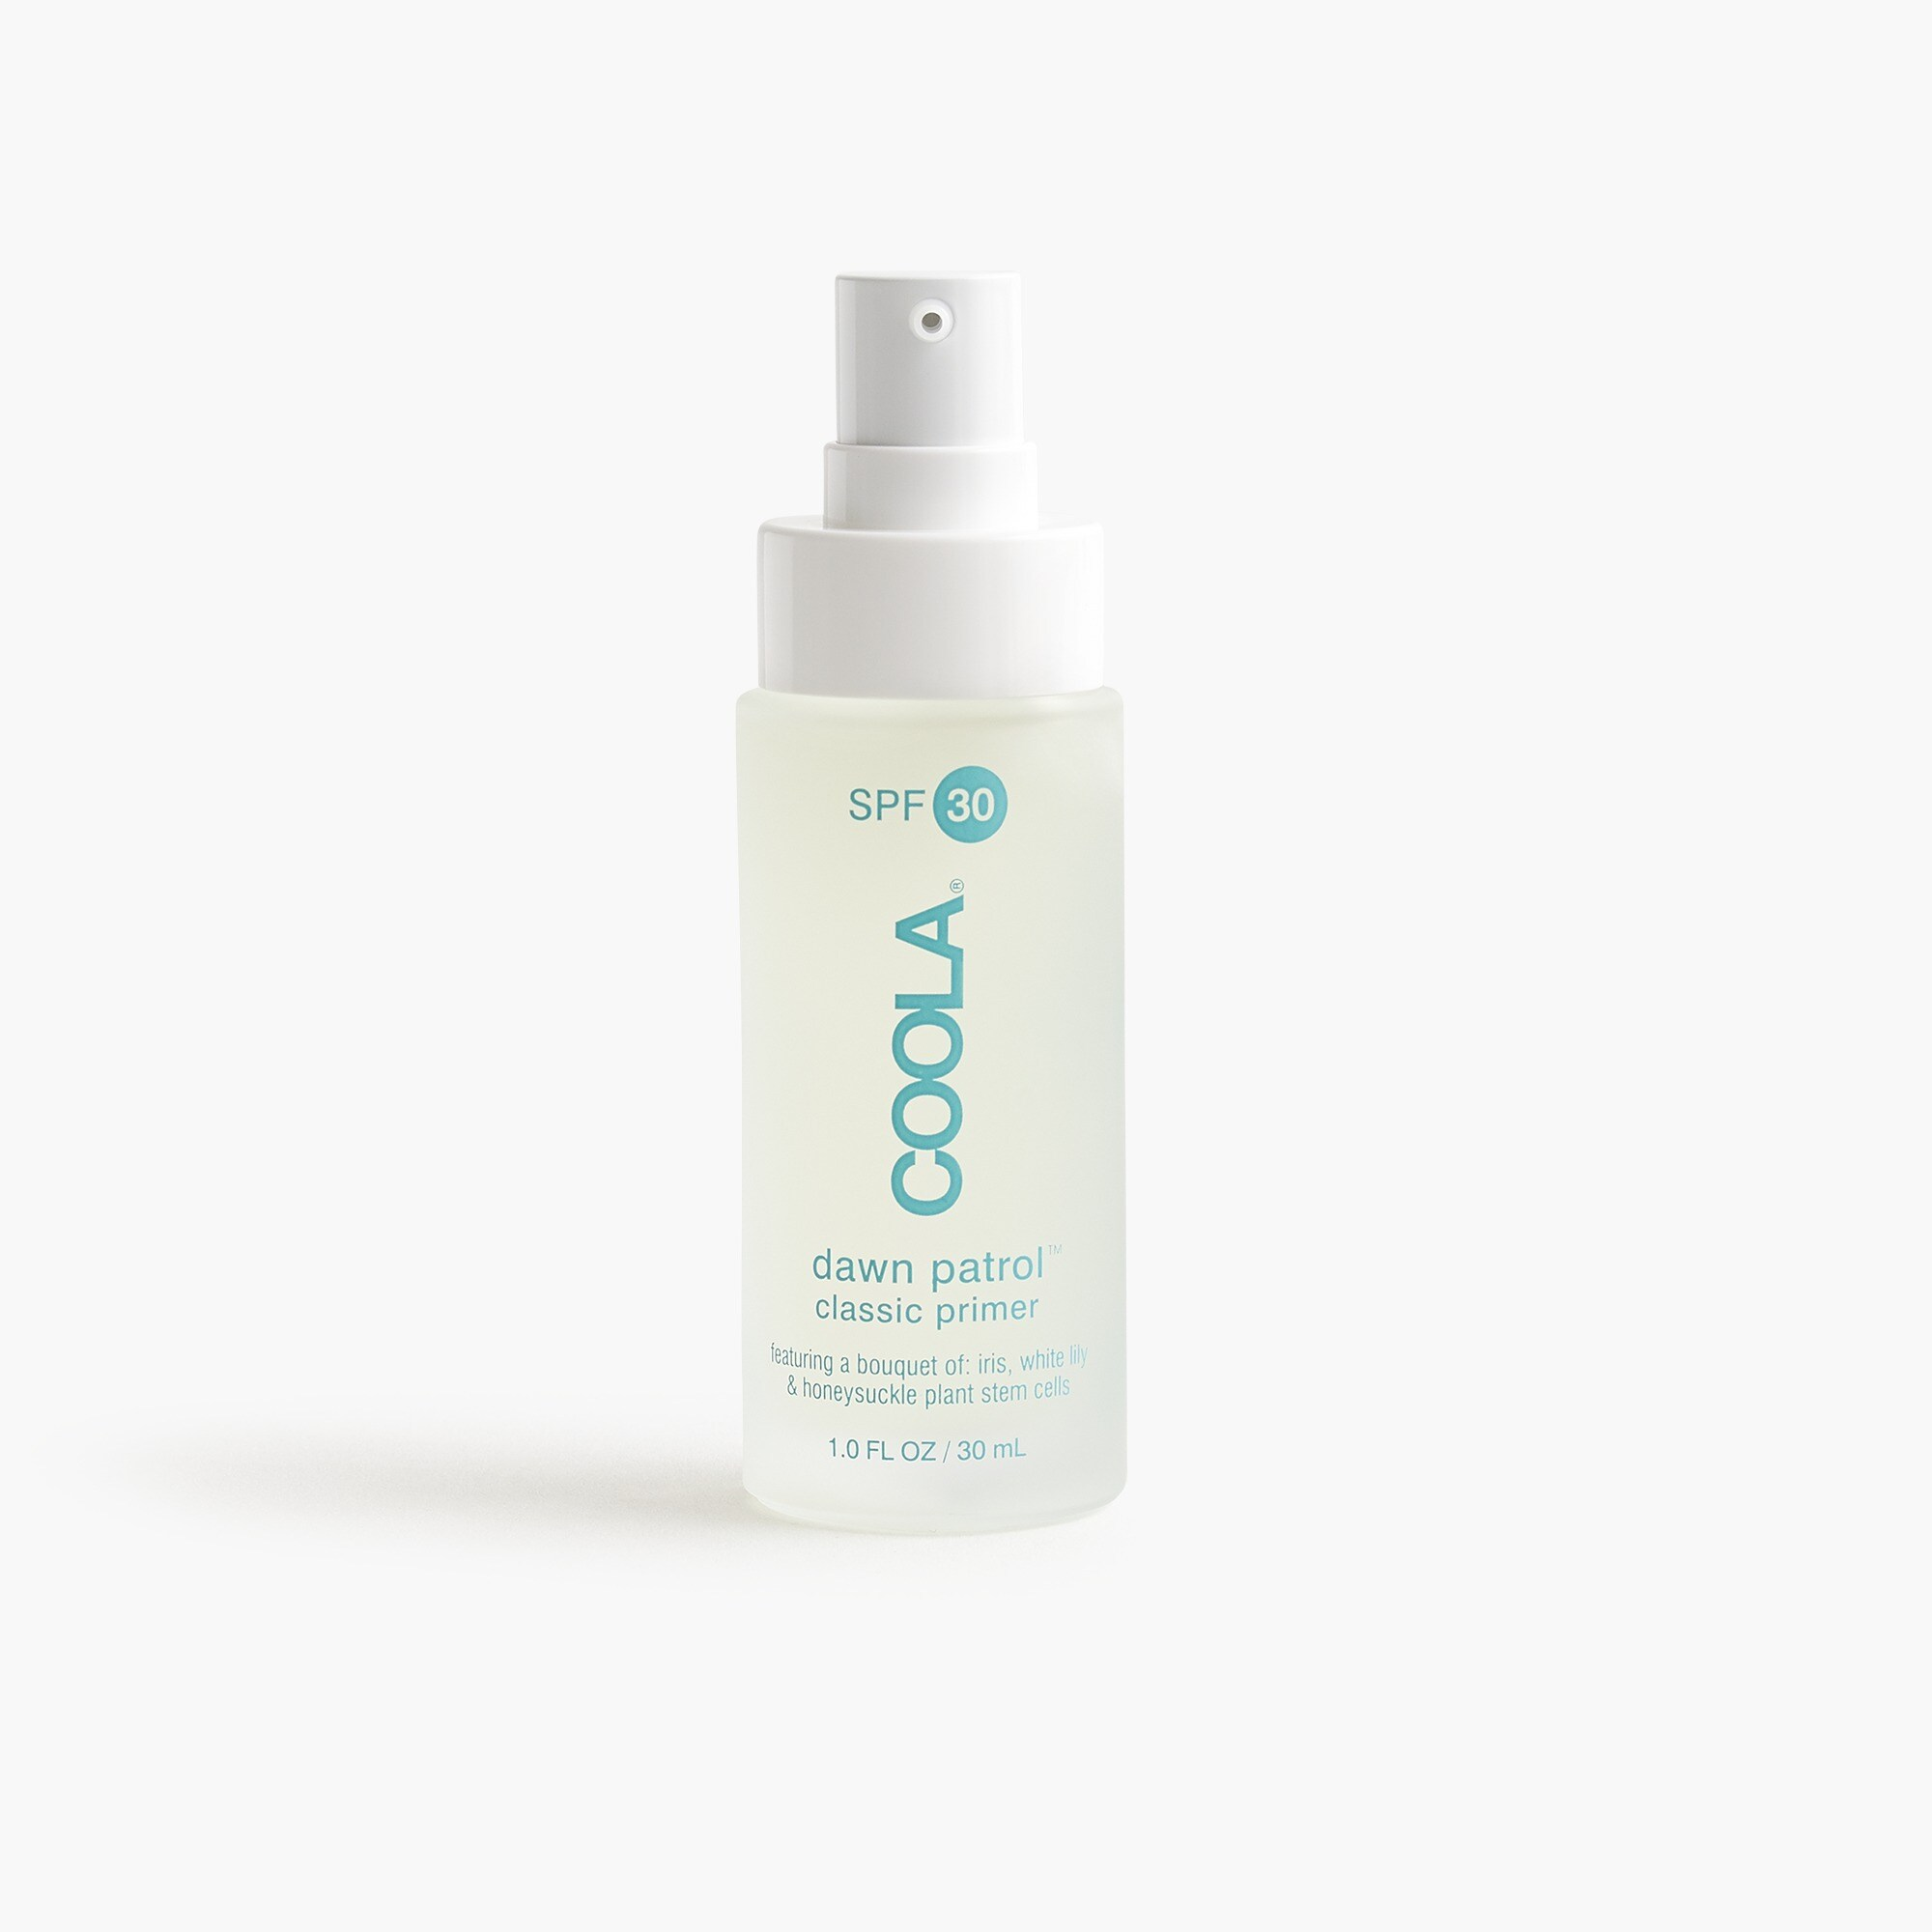 Coola® SPF 30 makeup primer women j.crew in good company c